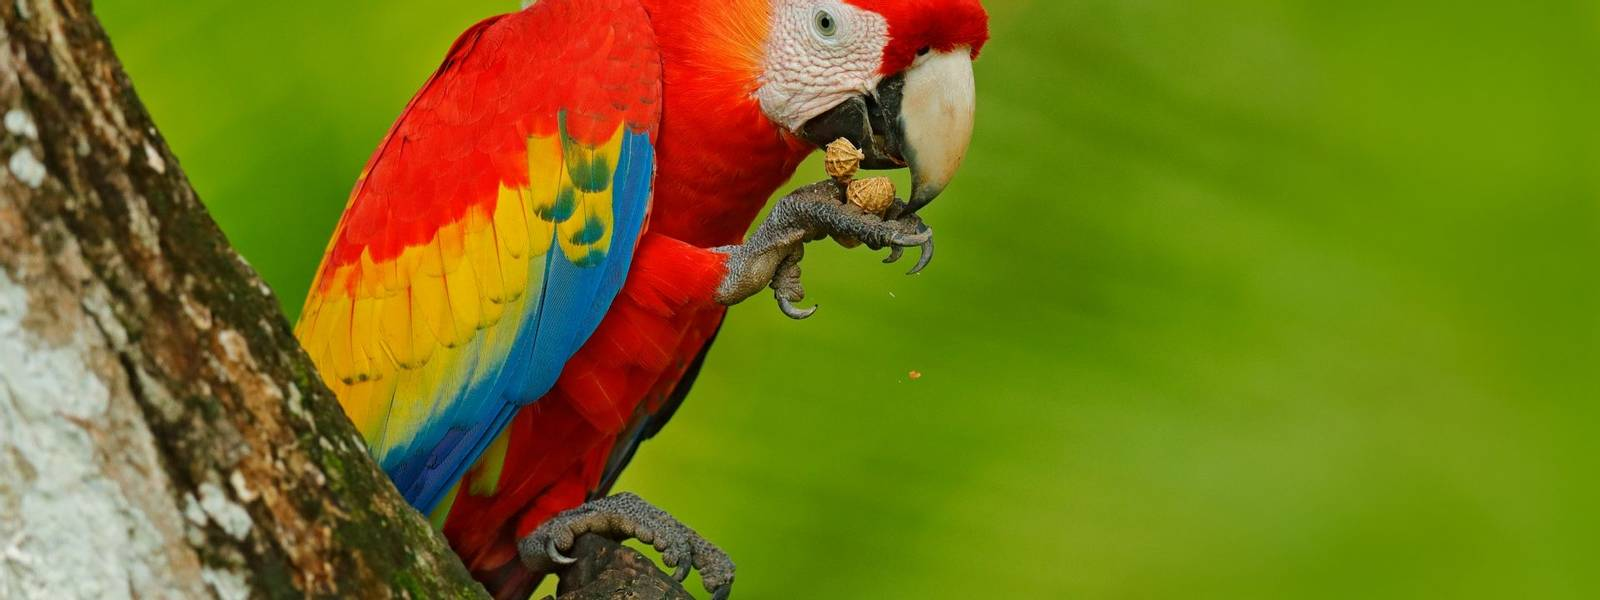 Parrot Scarlet Macaw, Ara macao, in green tropical forest with nut, Costa Rica, Wildlife scene from tropic nature. Red bird …